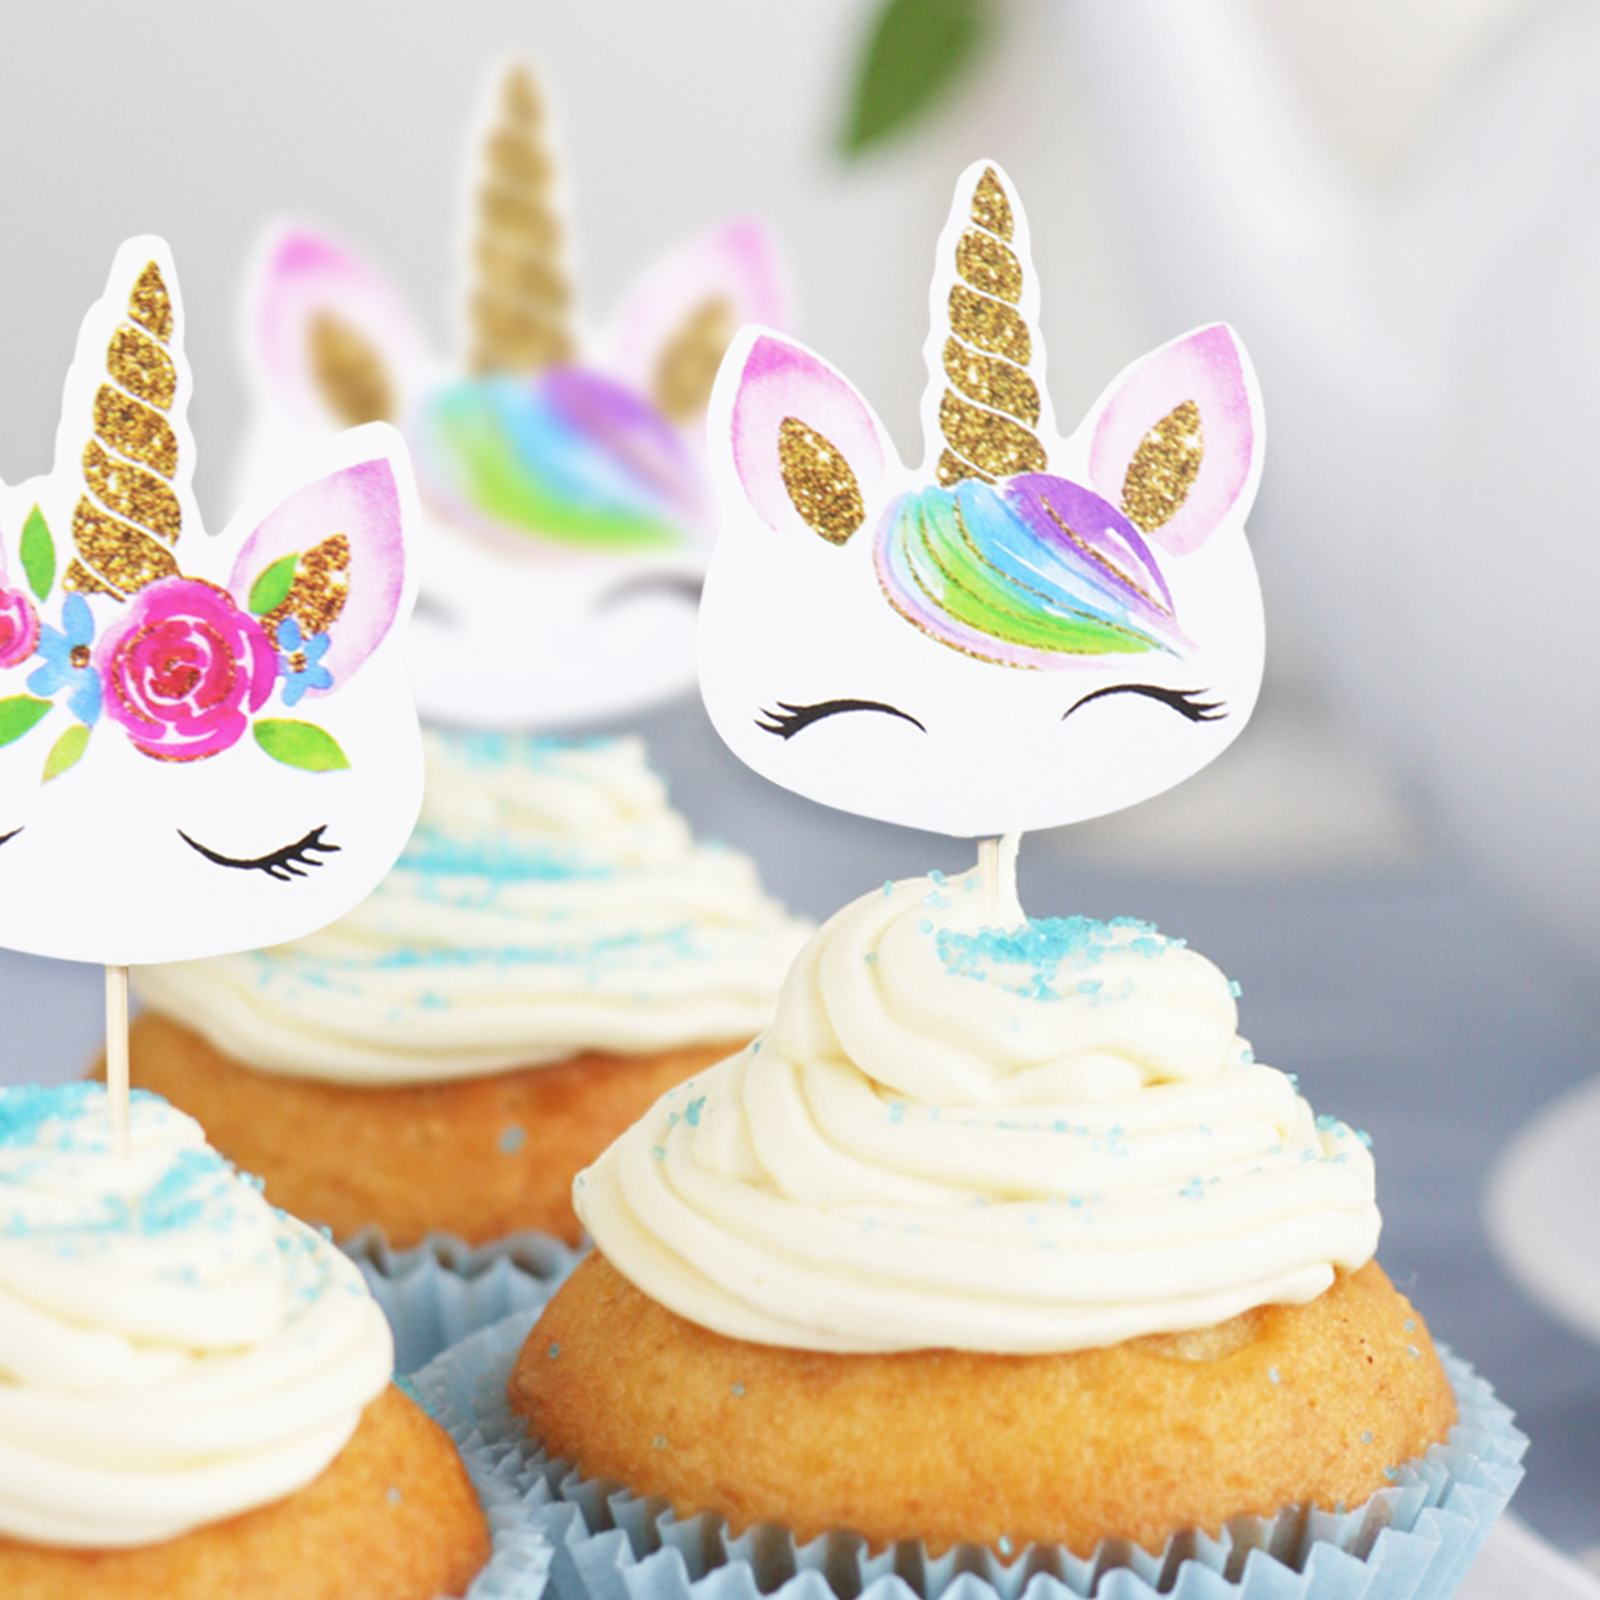 Unicorn Party Cake Insert Bachelorette Party Wedding Decoration Happy Birthday Baby Shower Supplies DIY Cake Flag For Home Decor